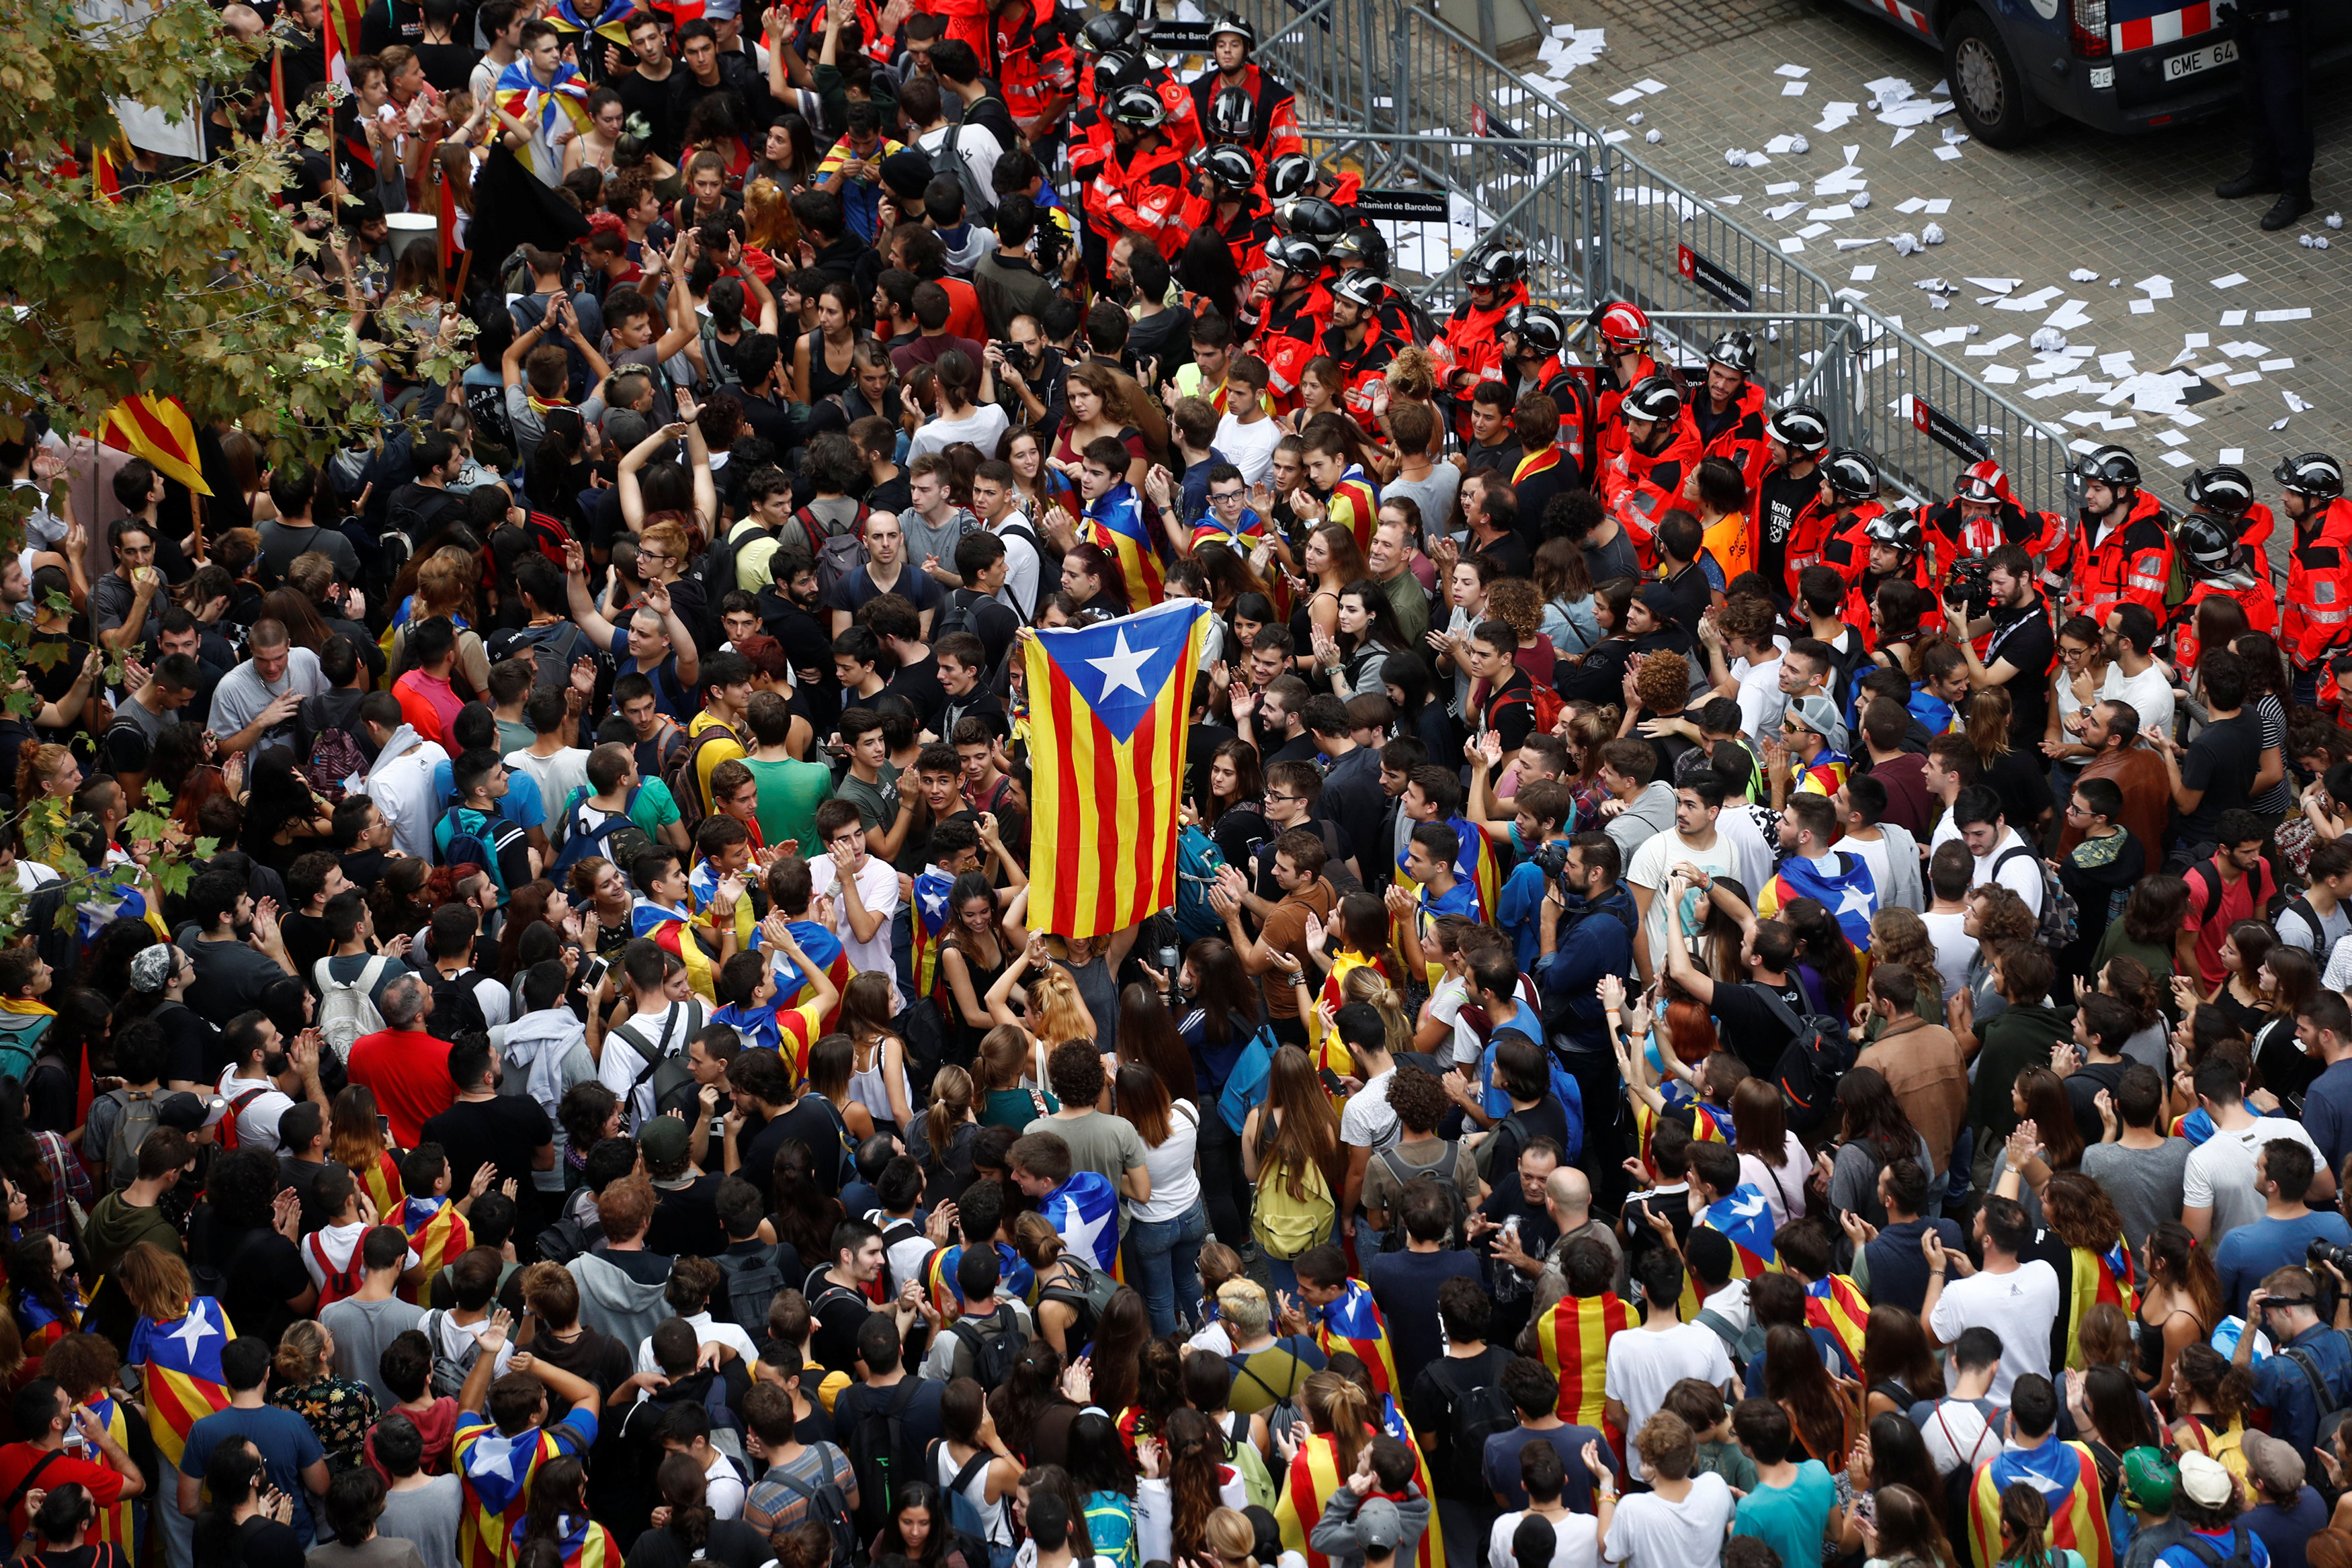 Tens of thousands of Catalans take to streets to protest police action